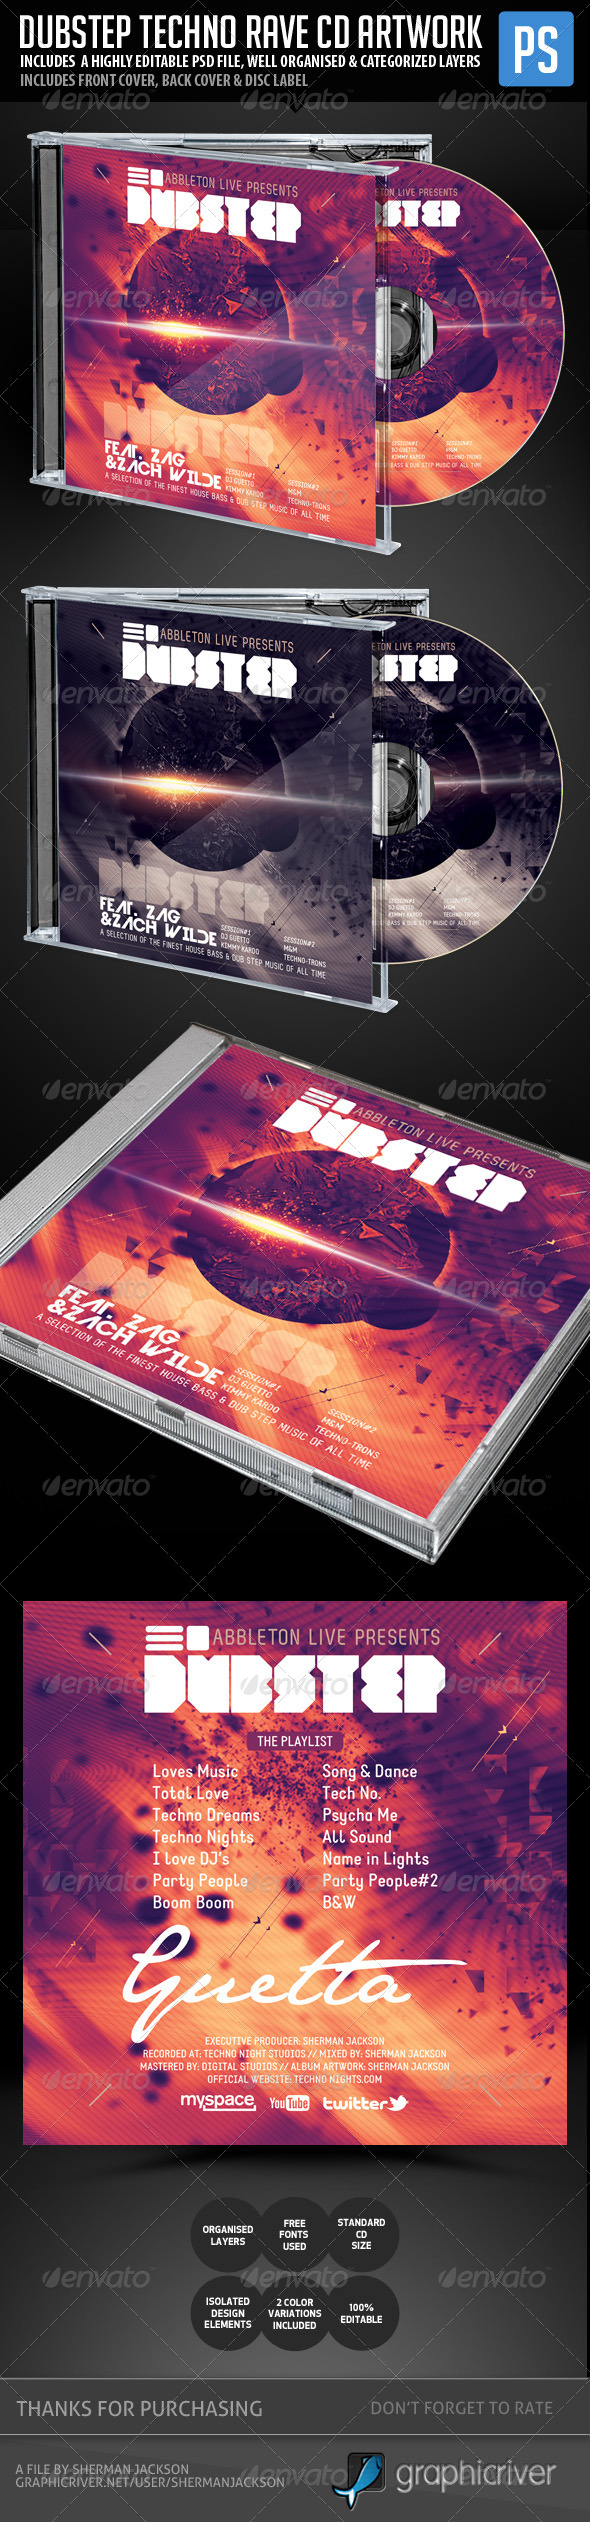 GraphicRiver Dubstep Techno Rave CD Template 5467686